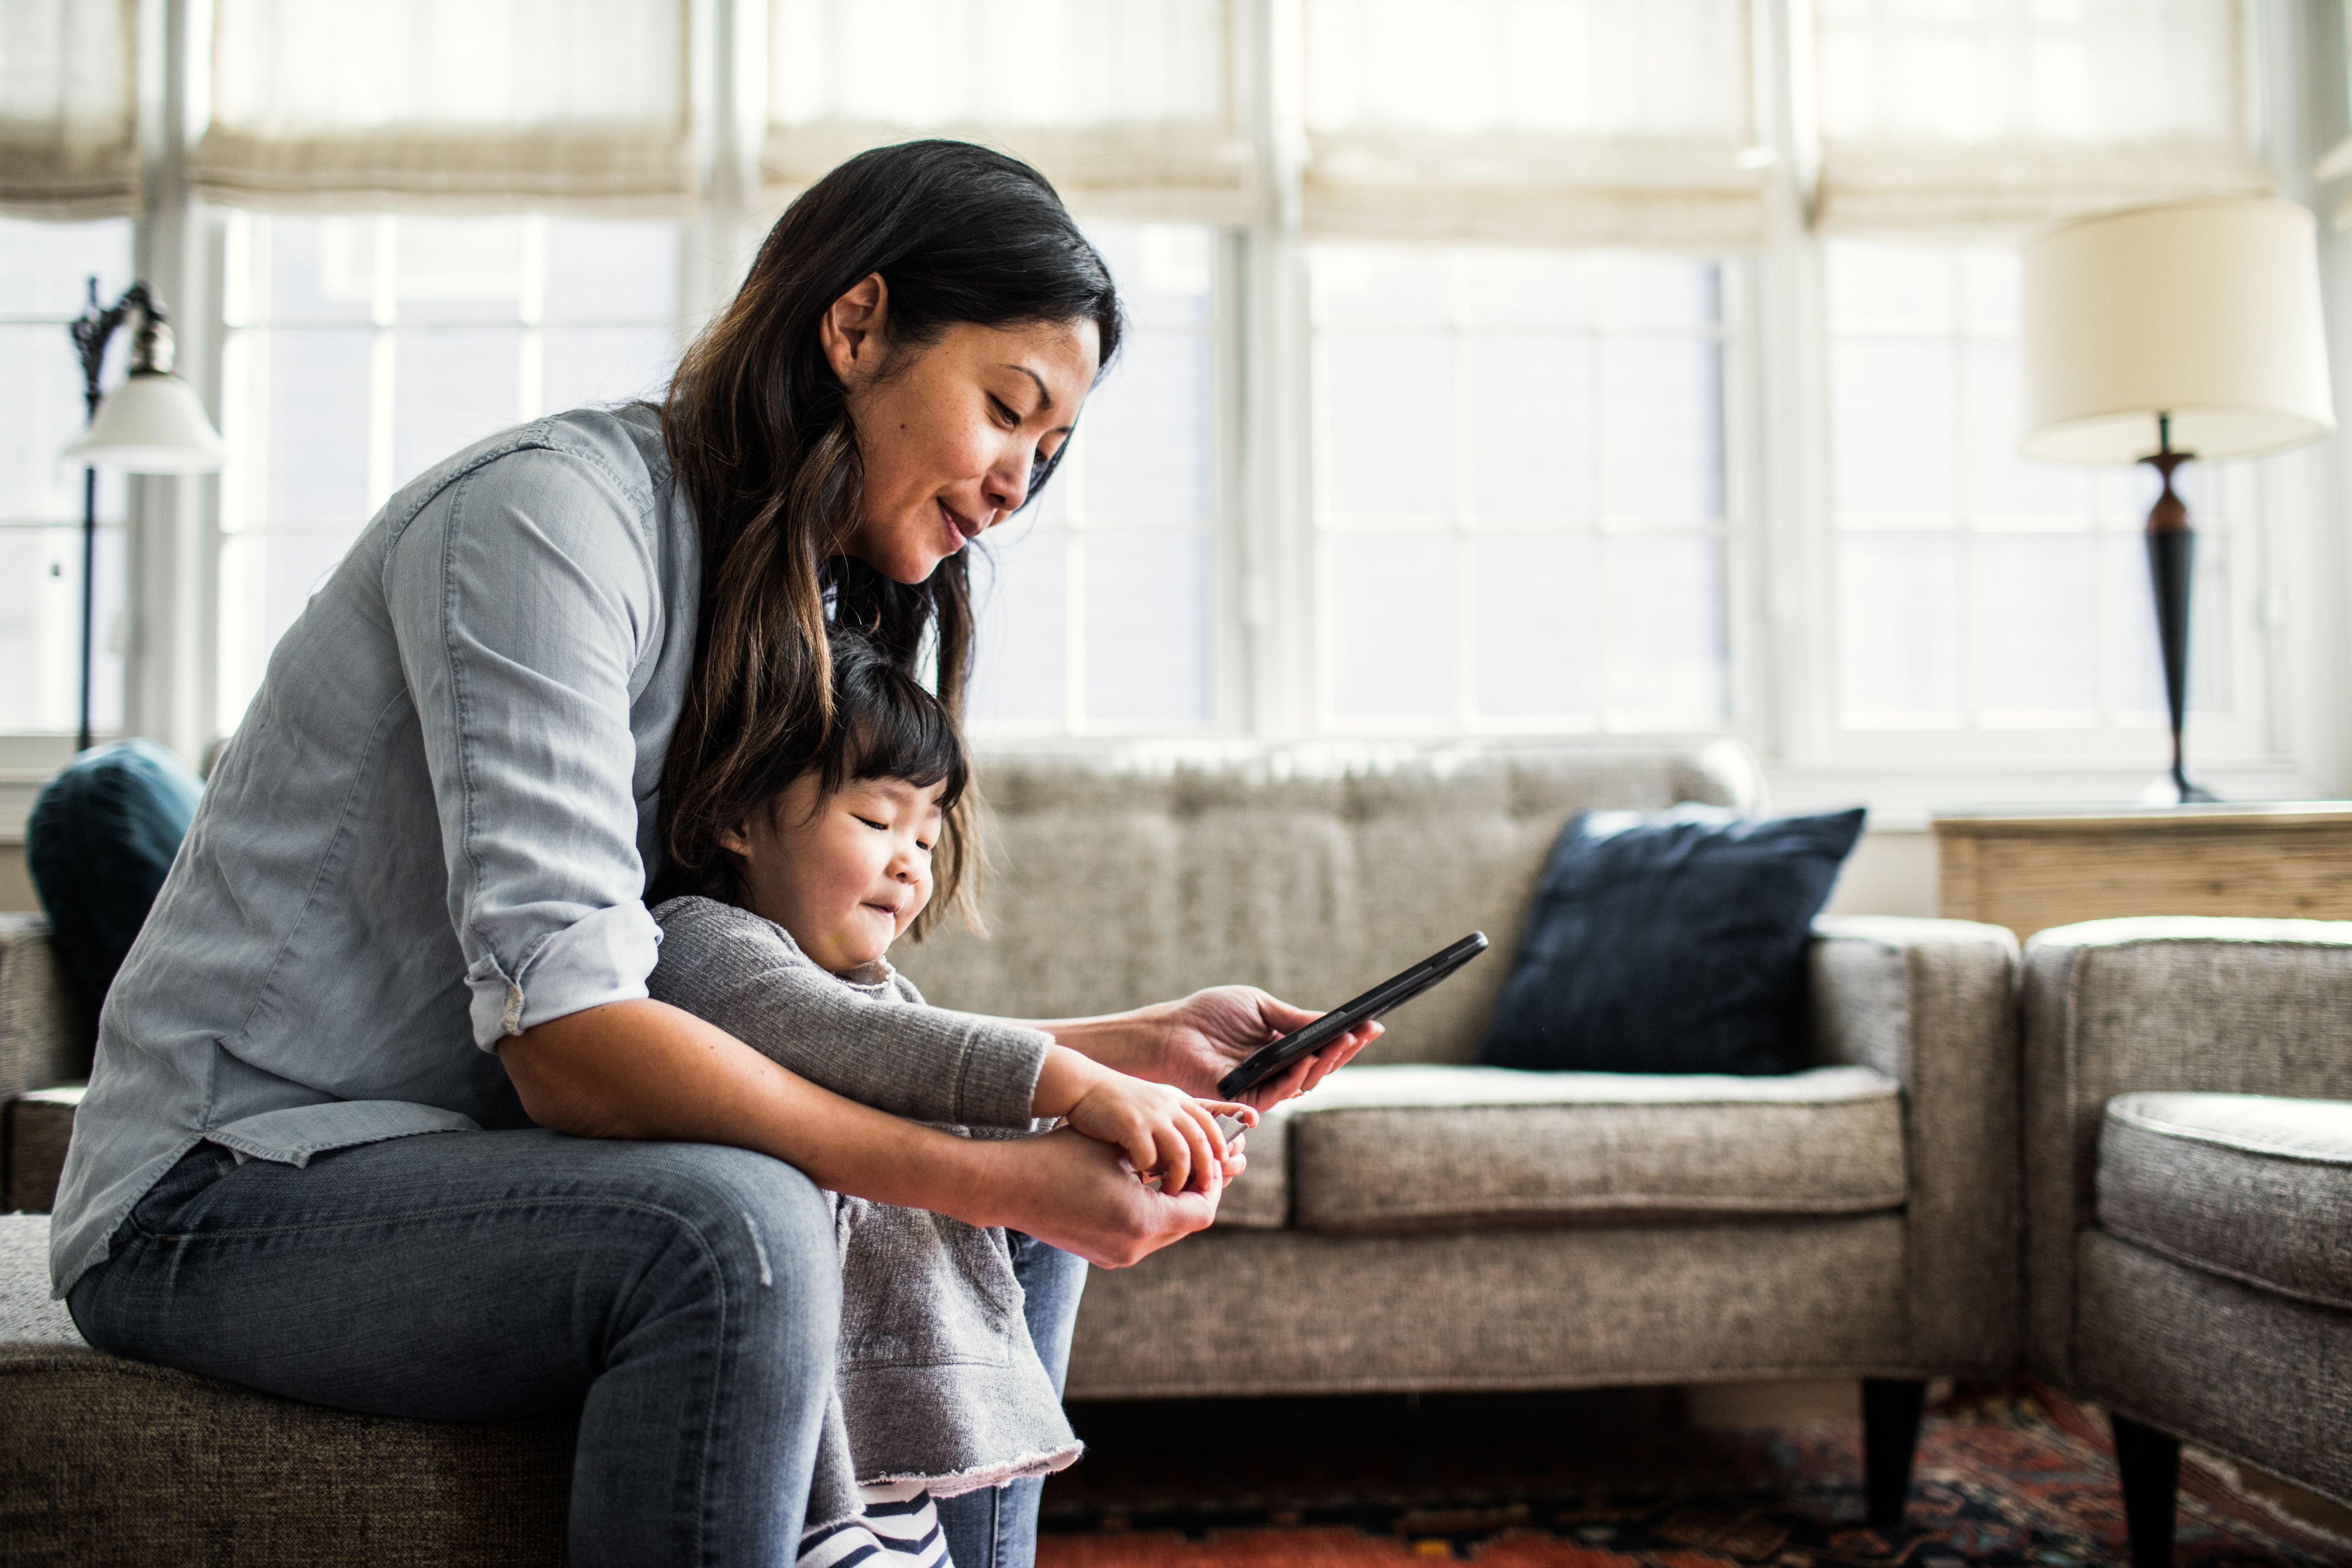 Woman using smartphone with a child standing between her legs